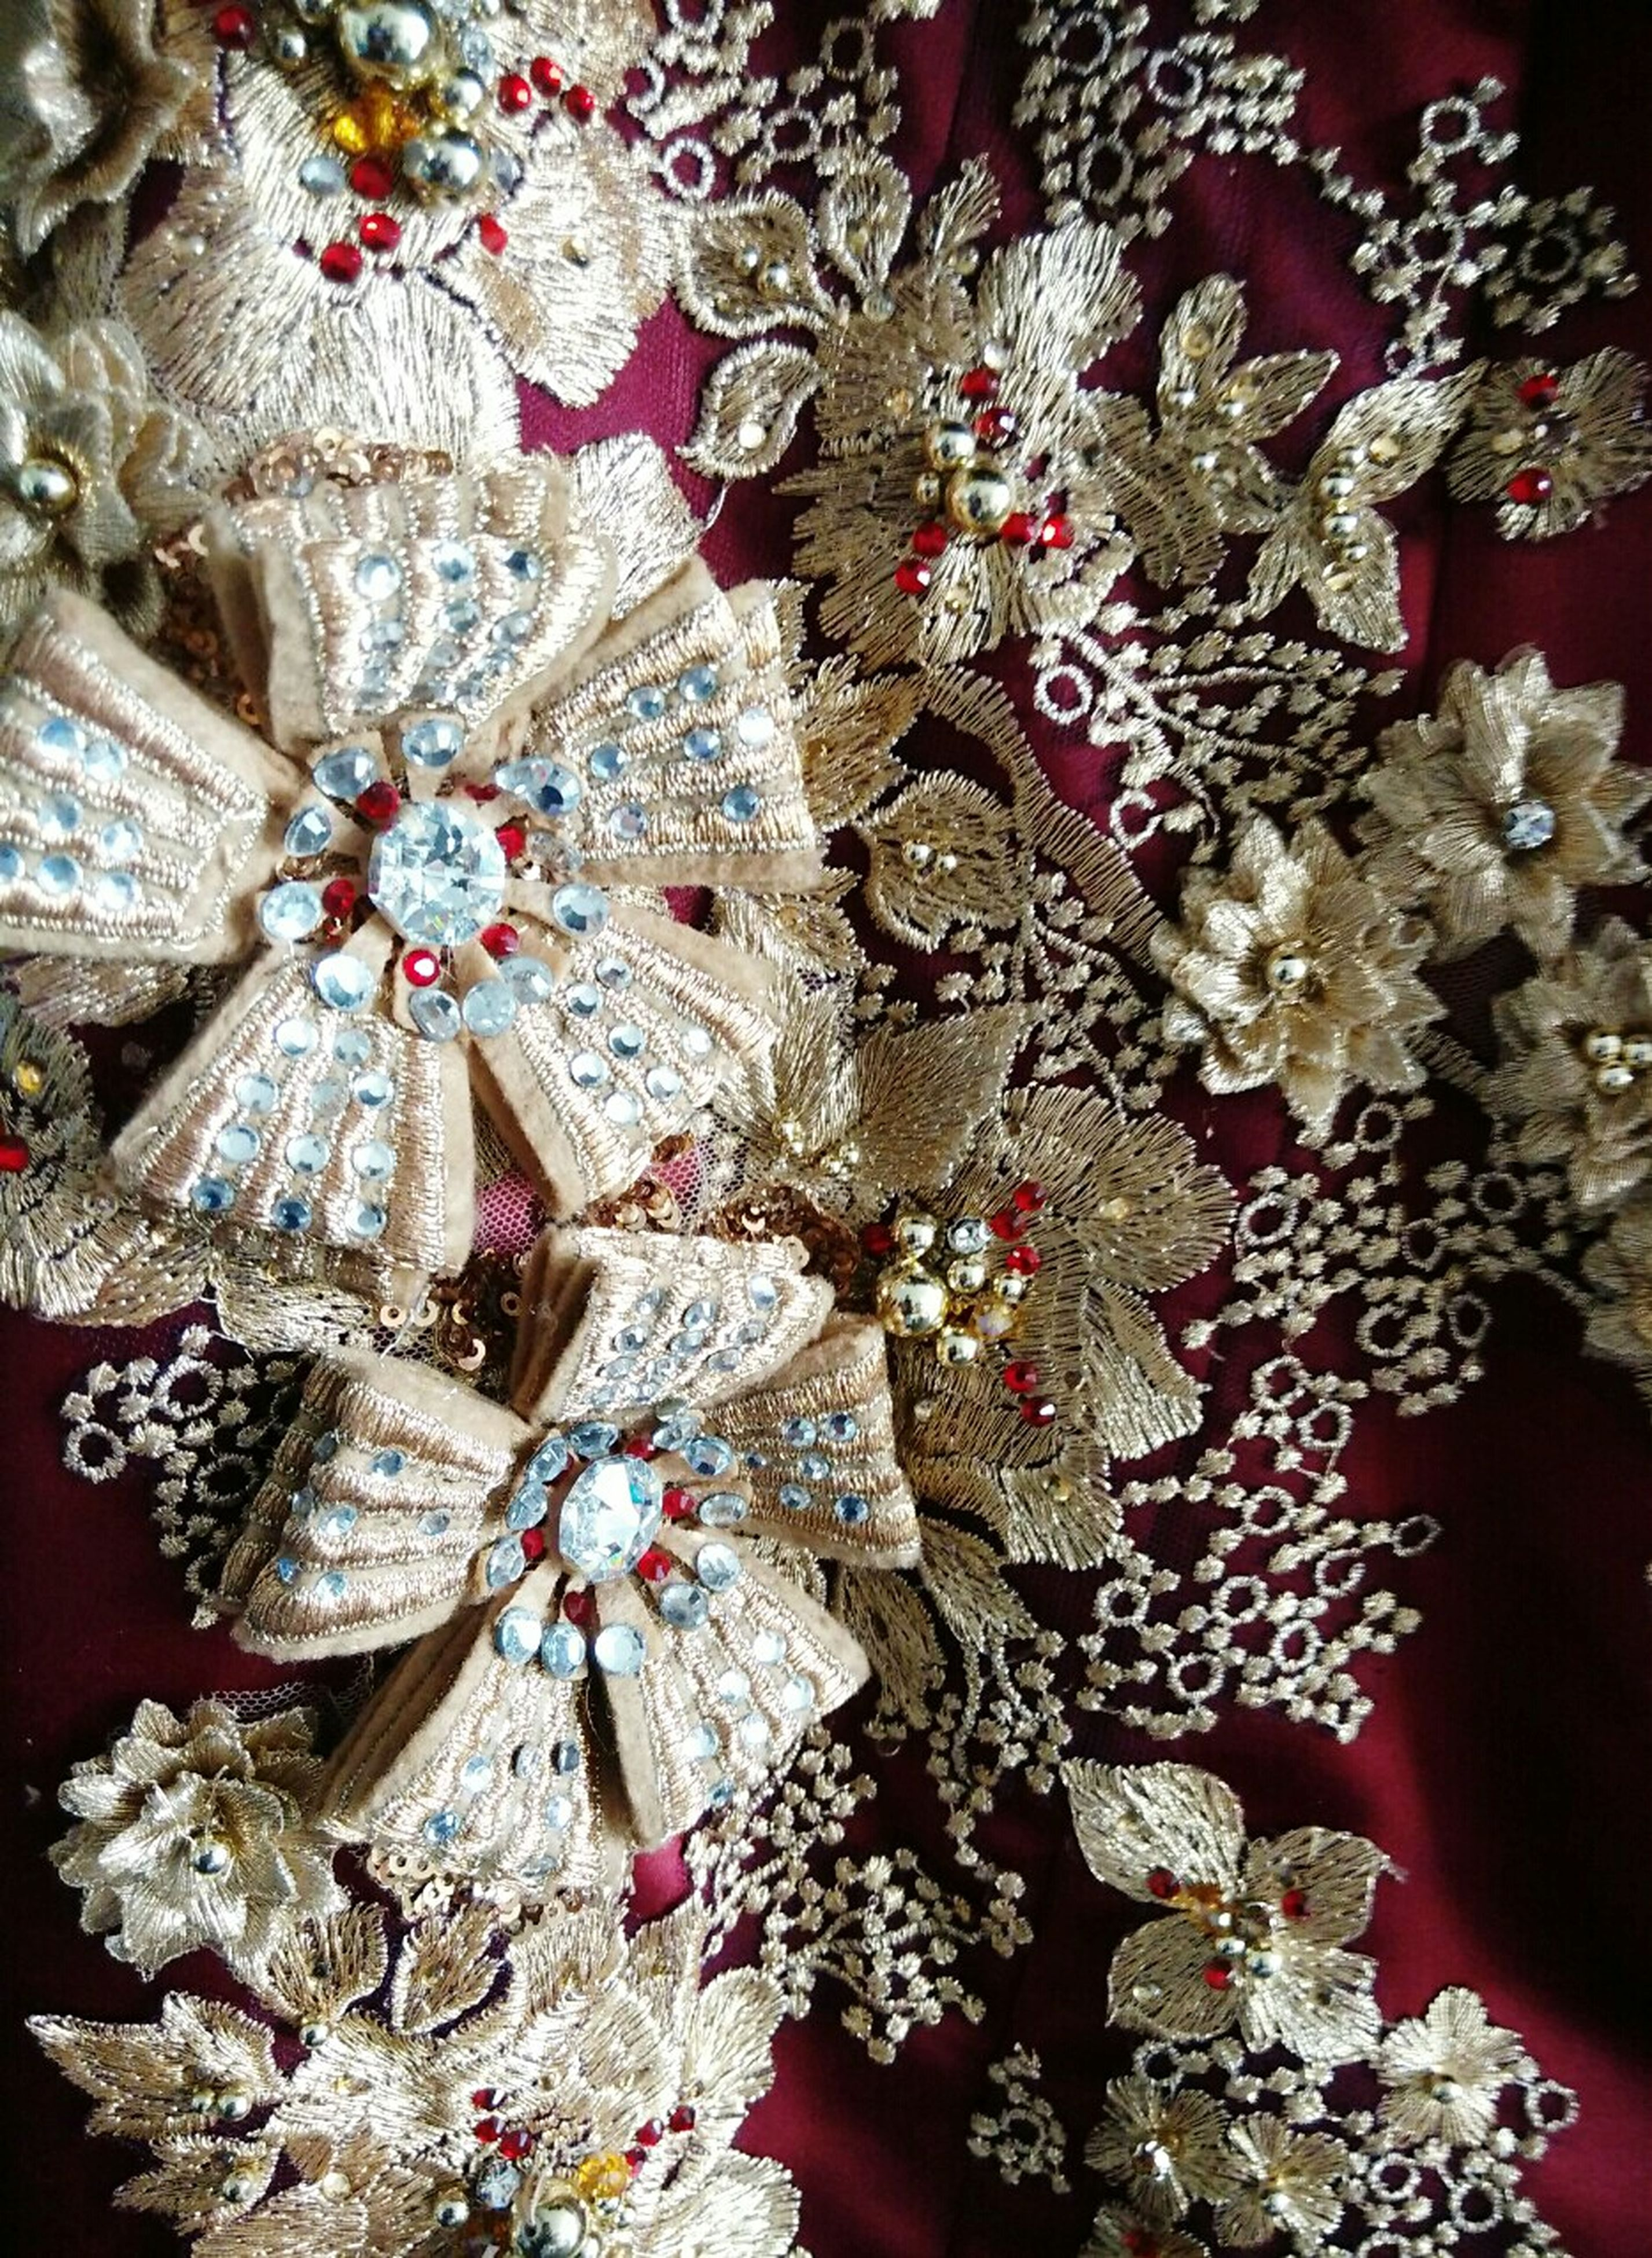 indoors, flower, art and craft, art, creativity, decoration, close-up, high angle view, floral pattern, tradition, multi colored, design, cultures, variation, textile, still life, fragility, bouquet, fashion, fabric